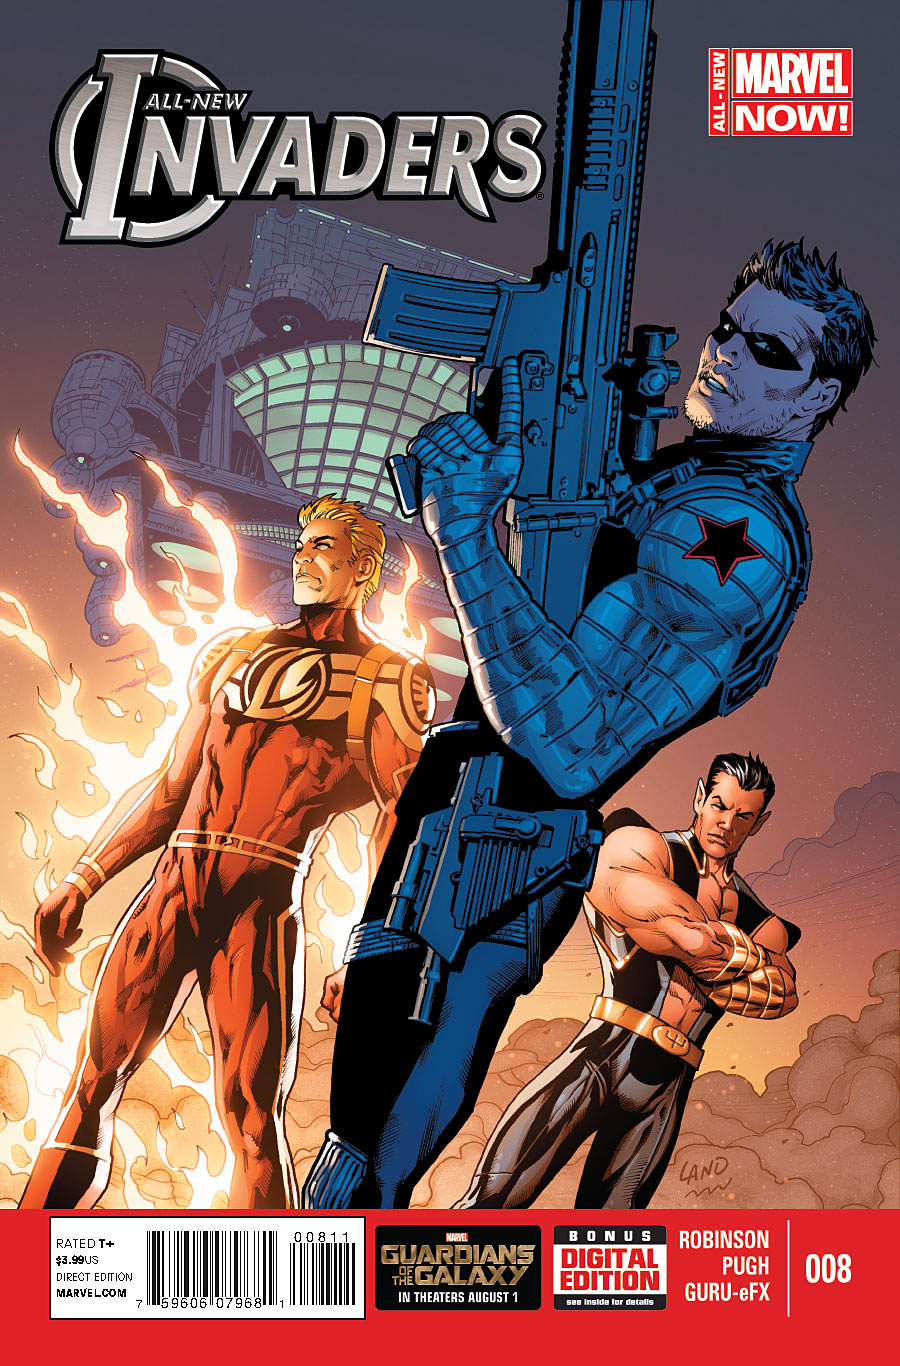 Copertina di All-New Invaders 8 del 2014. di Greg Land e Nolan Woodard